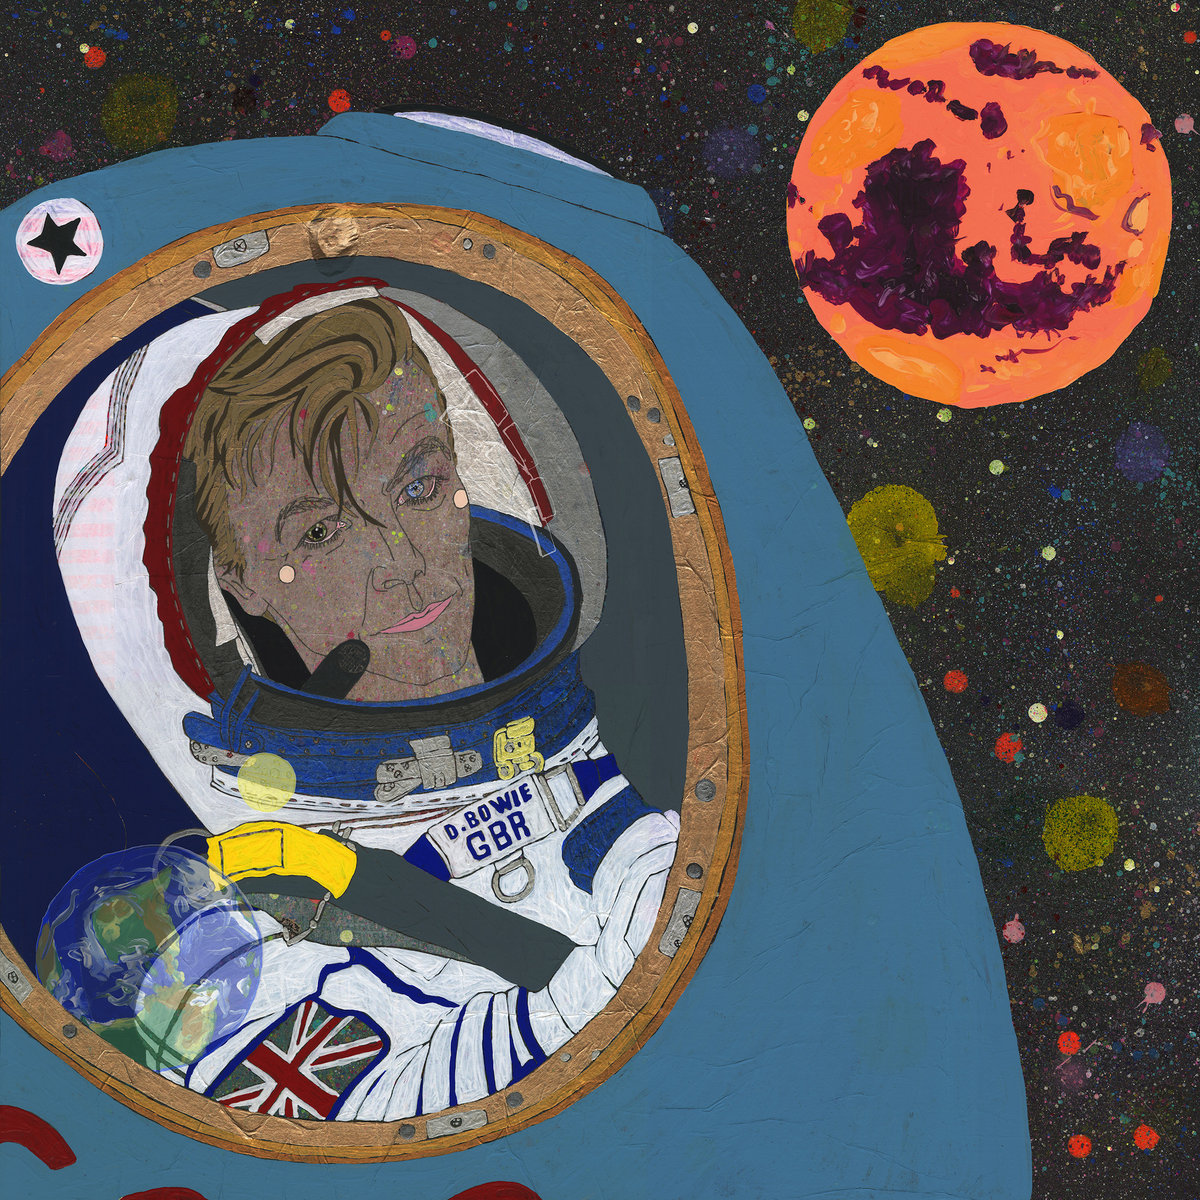 space oddity mp3 download free